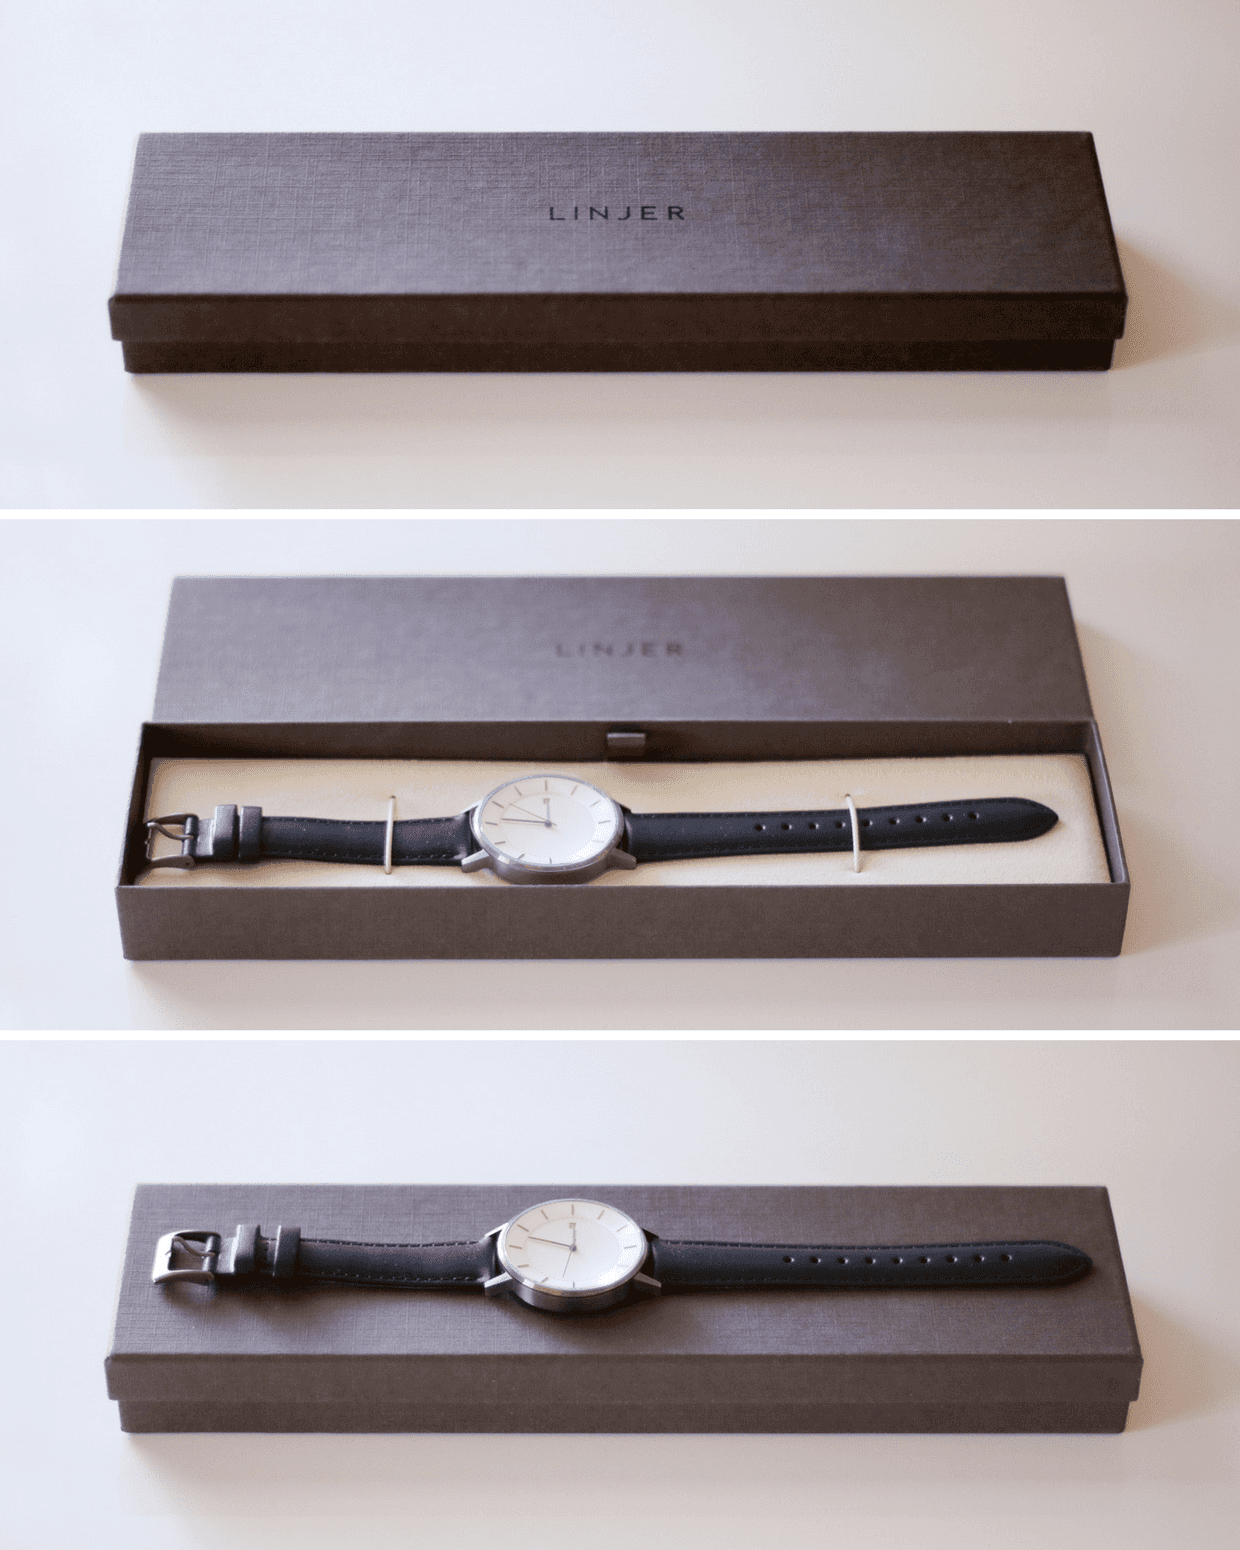 Unboxing the Linjer watch